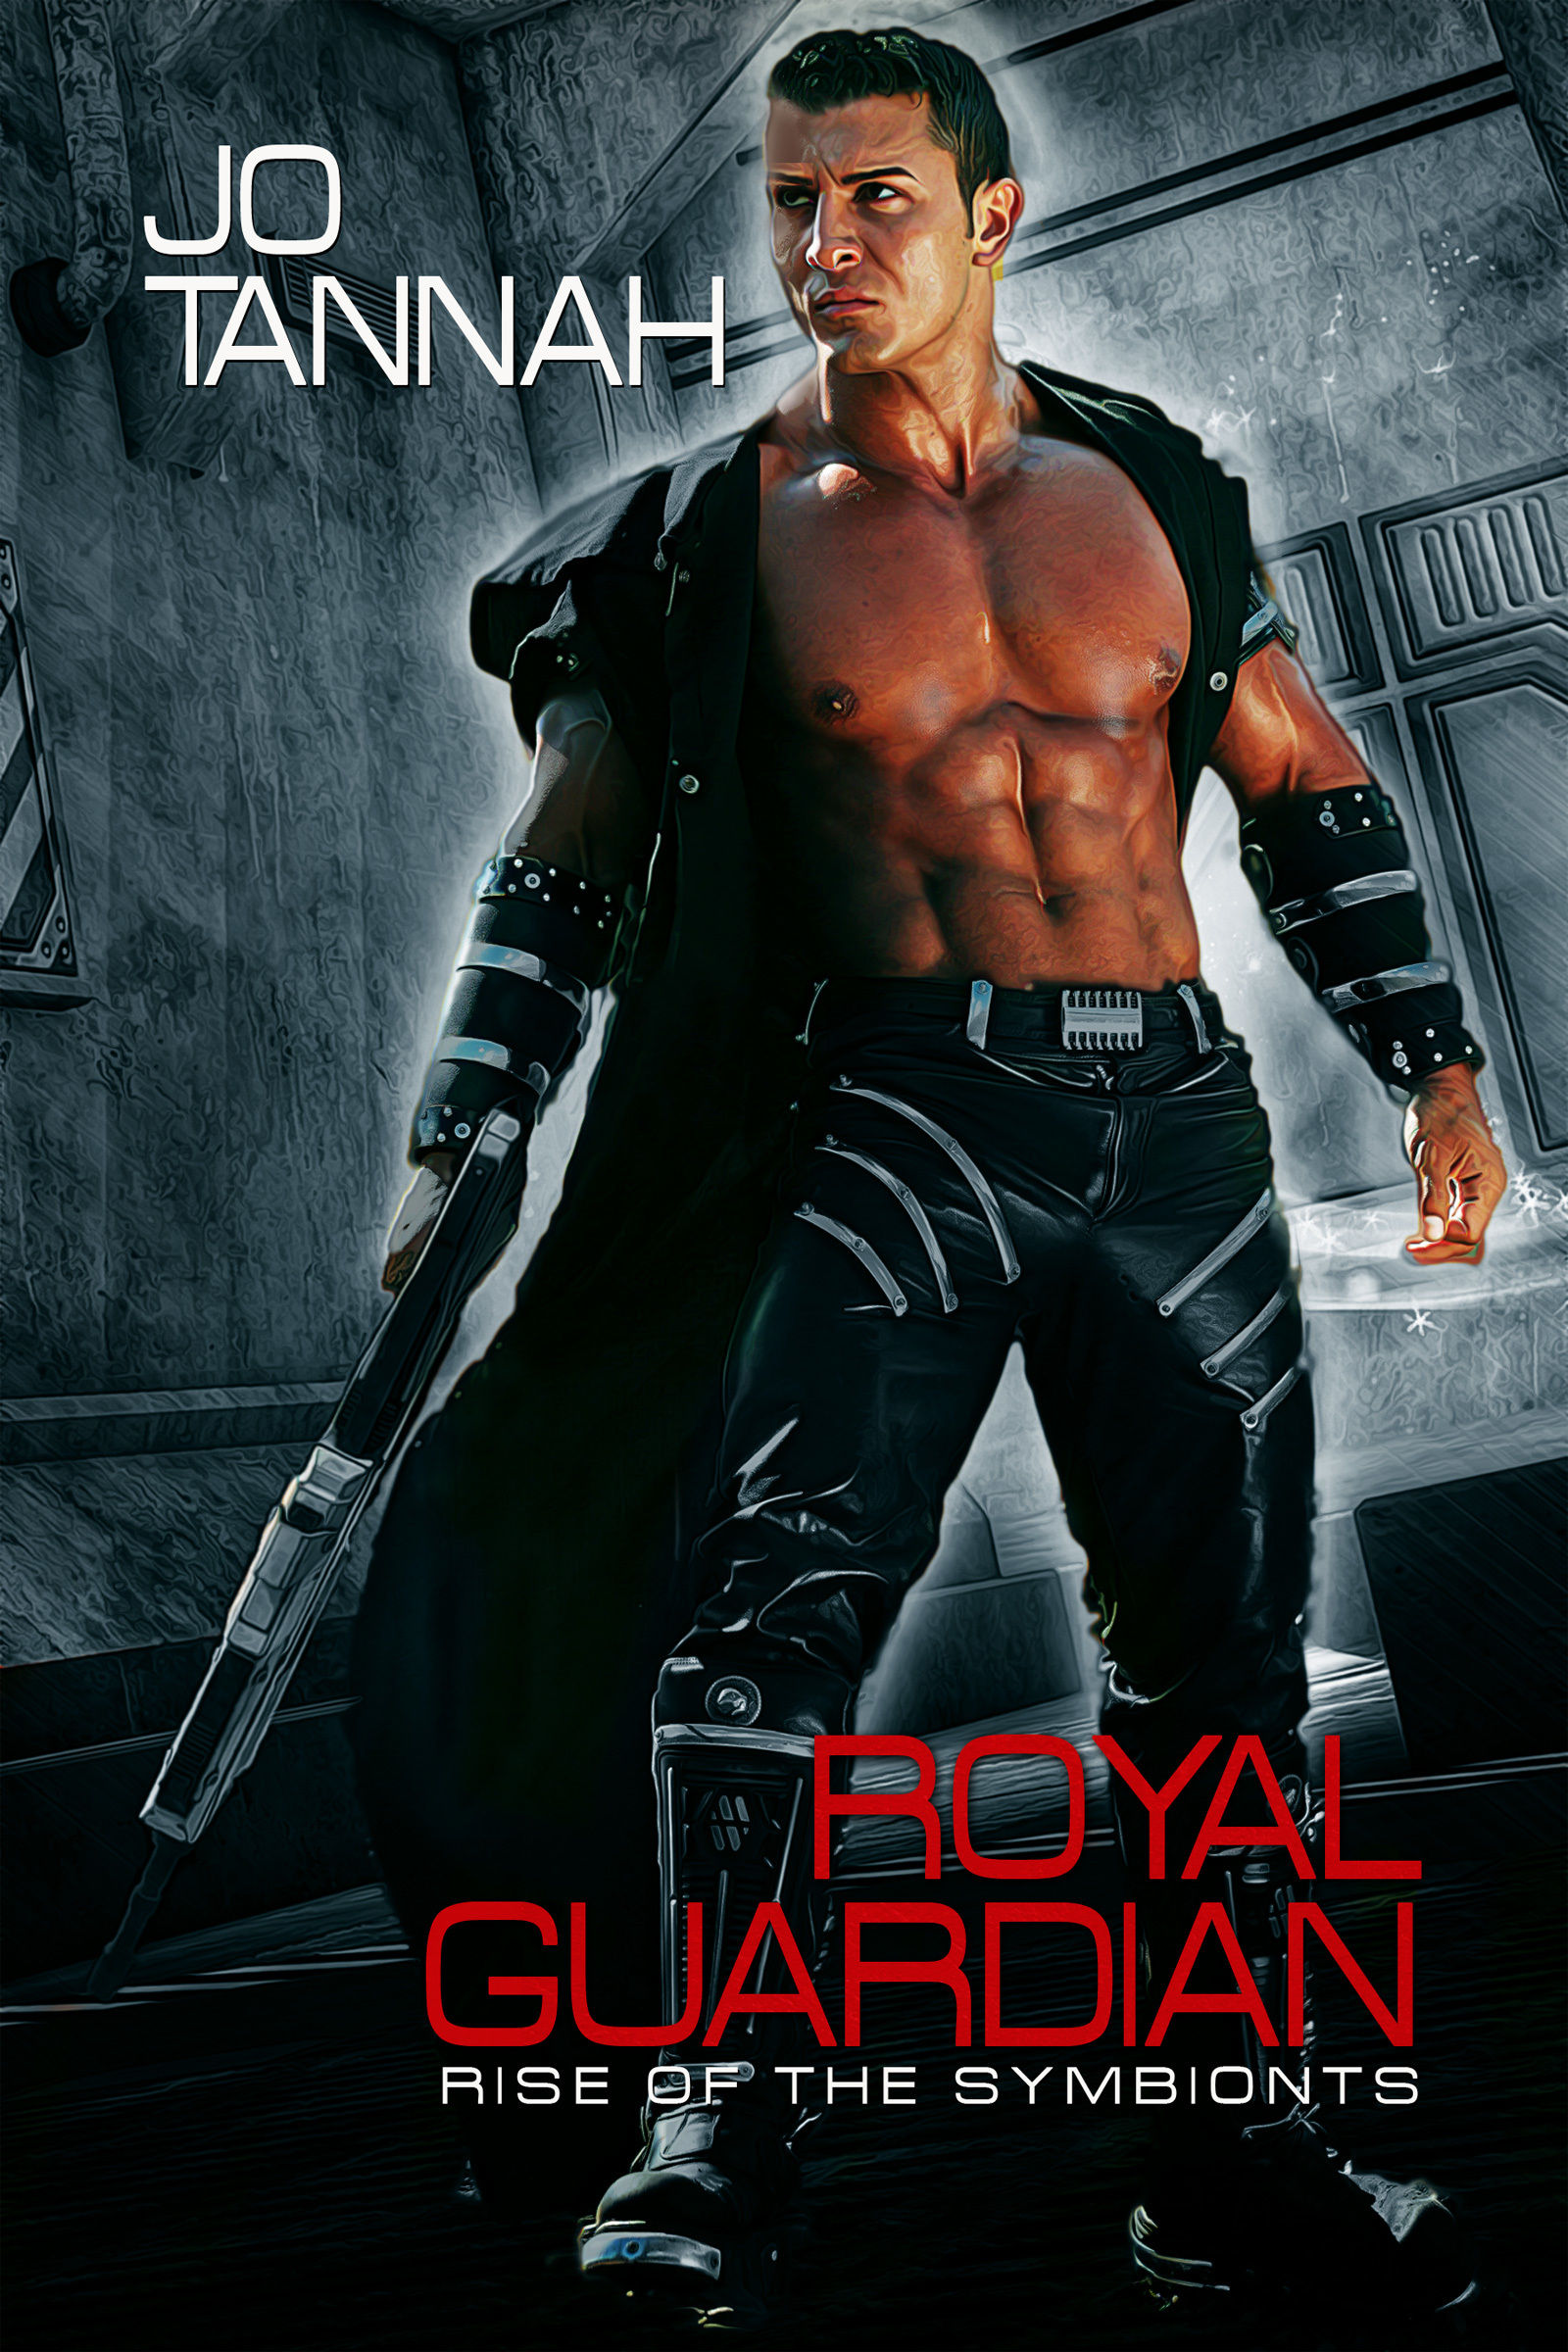 Review: Royal Guardian by Jo Tannah